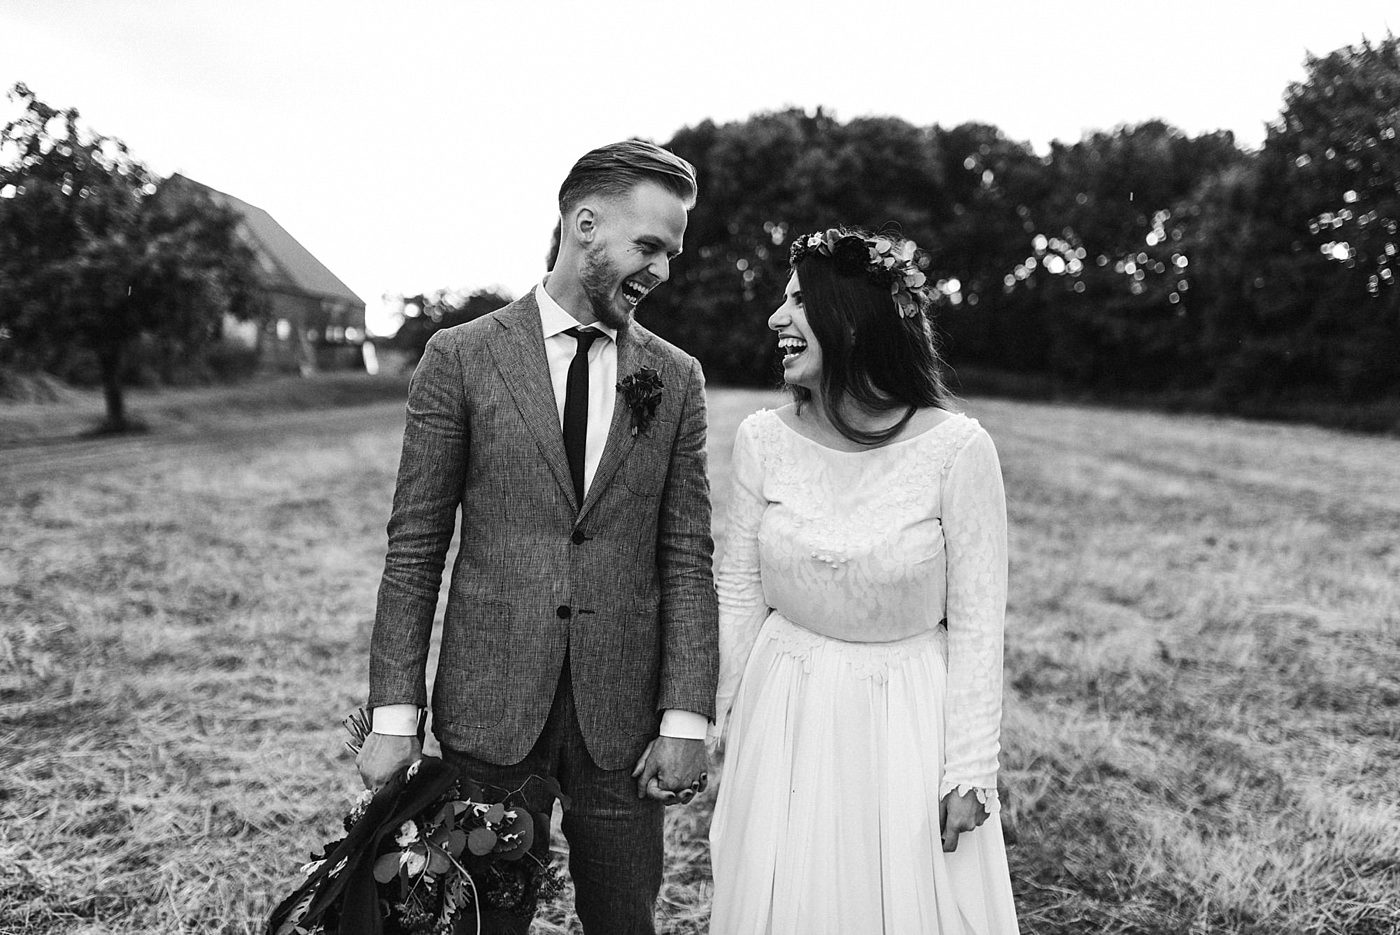 urban-elopement-wedding-237 Merve & Nils emotionales Elopement - Wedding Wesel & Schottlandurban elopement wedding 237 1